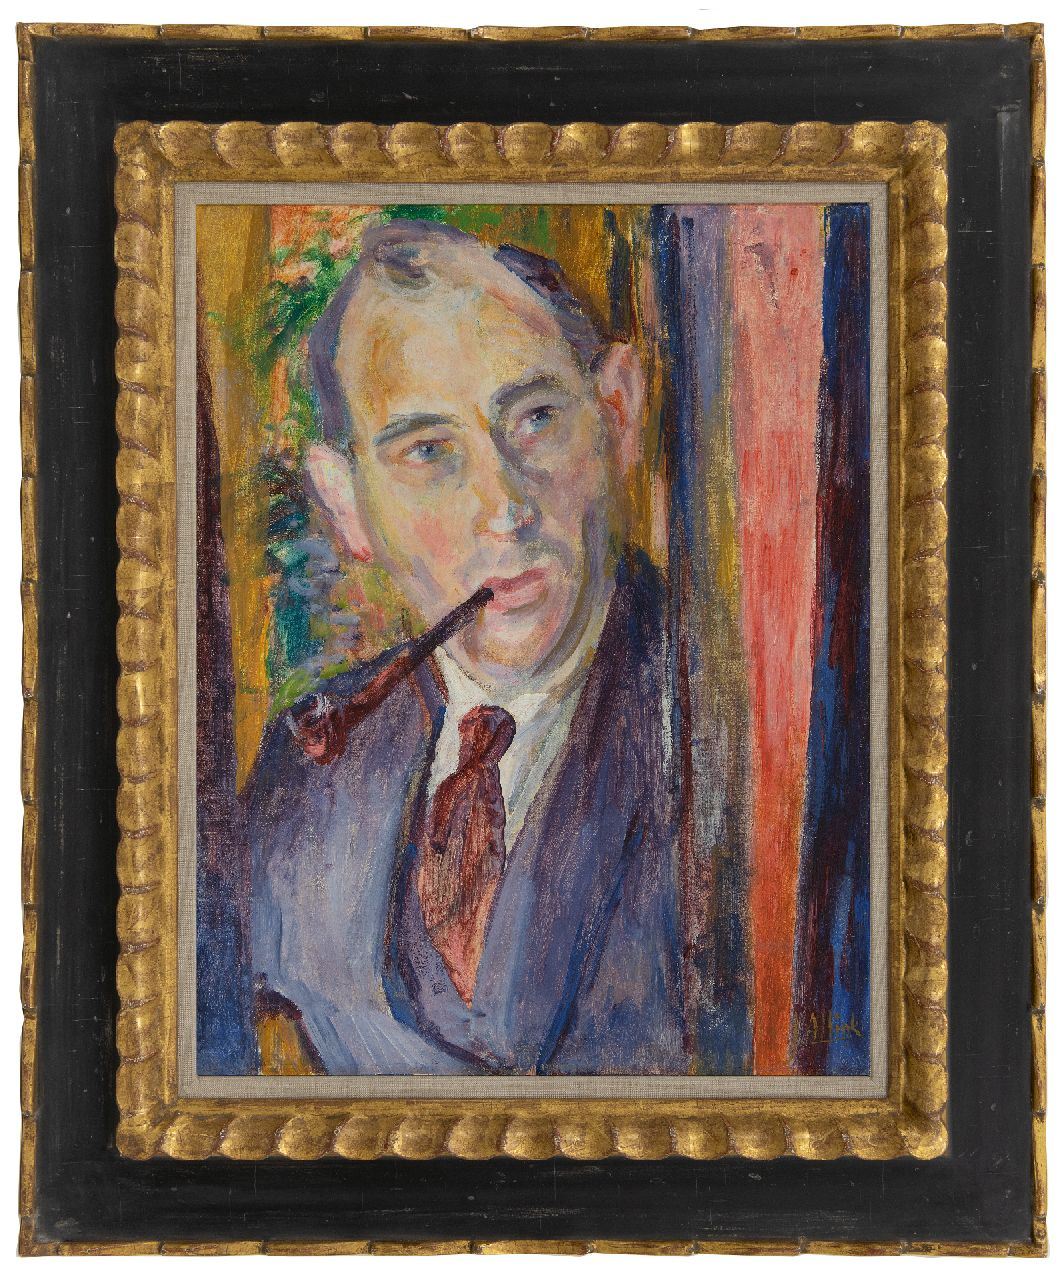 Altink J.  | Jan Altink | Paintings offered for sale | Self portrait, oil on canvas 54.4 x 42.1 cm, signed l.r. and painted circa 1925